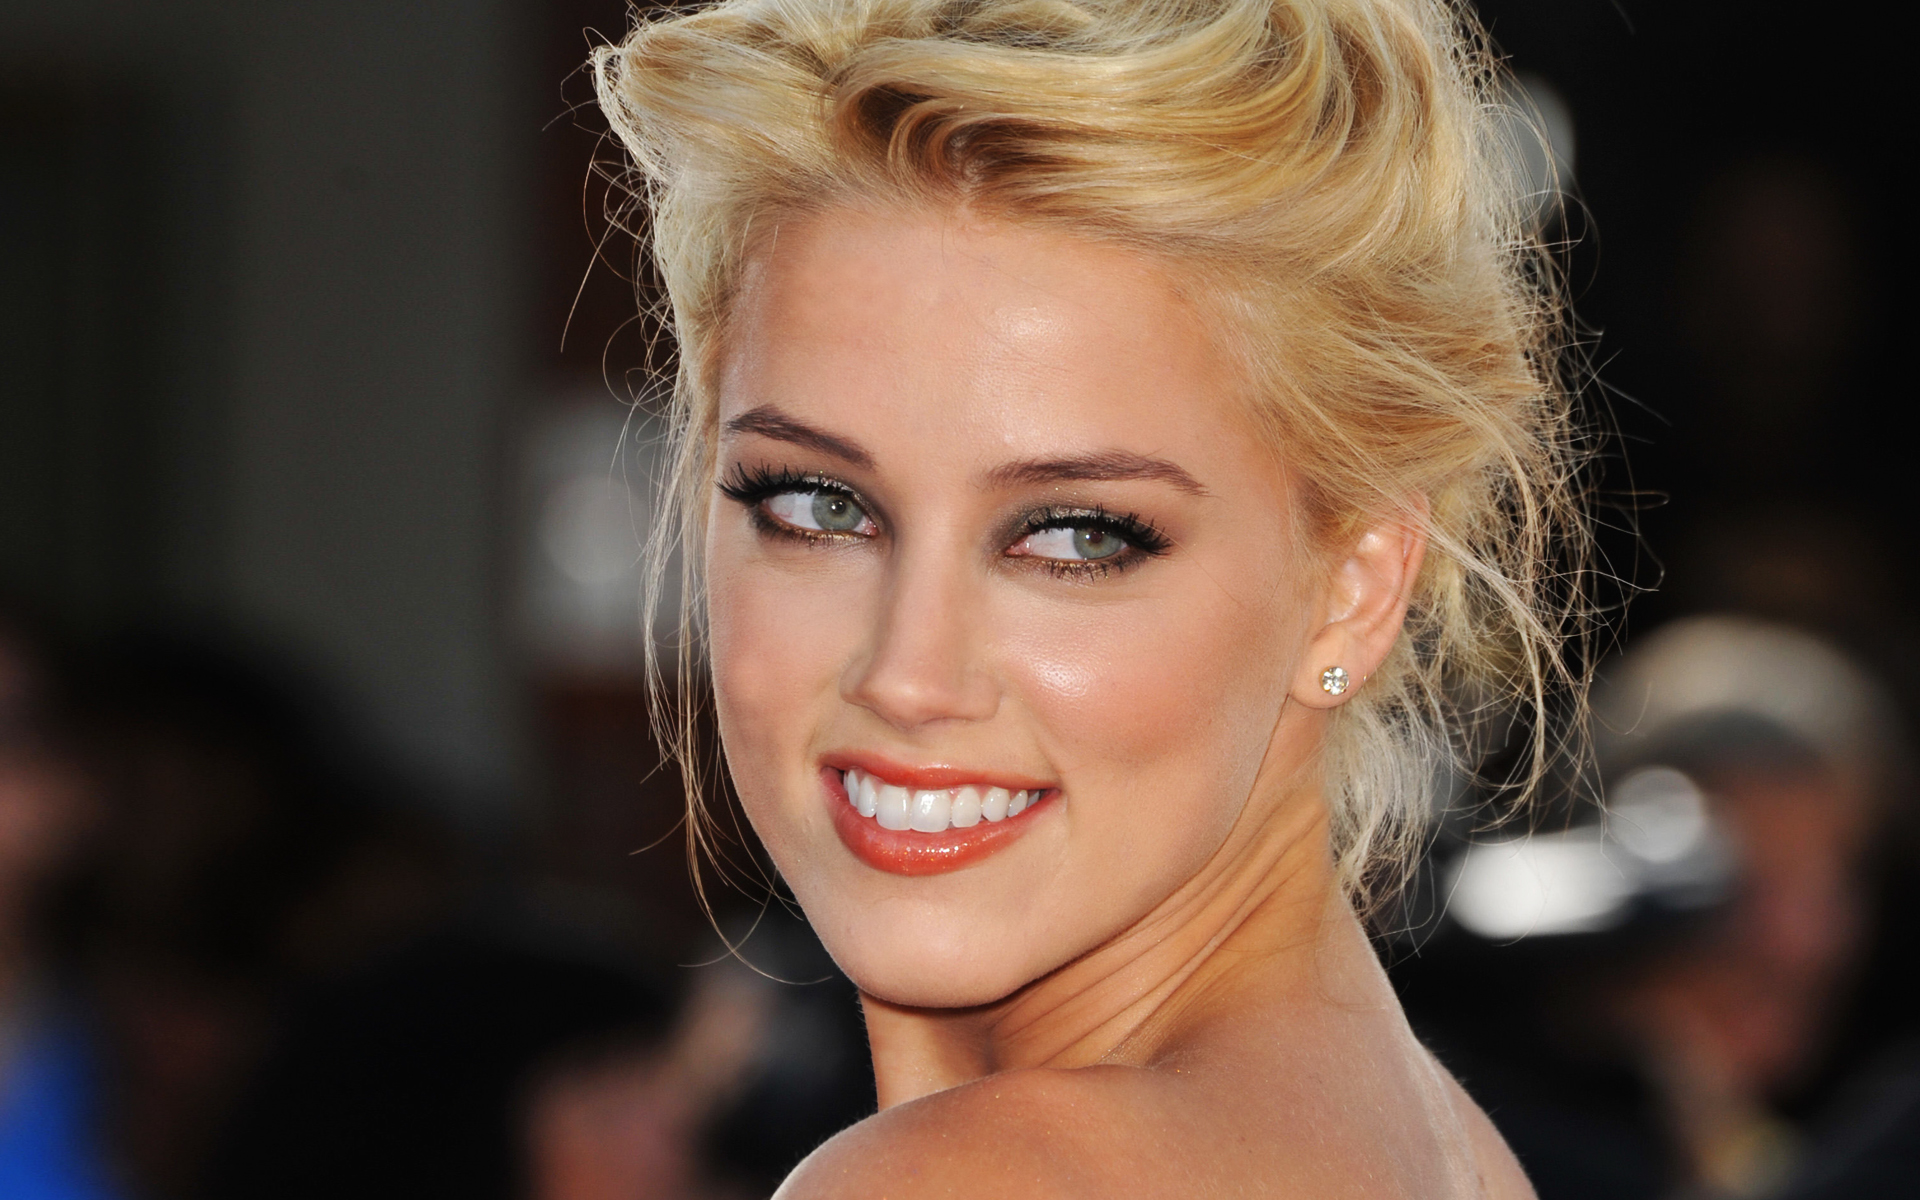 Amber Heard - Amber Heard Photo (36966395) - Fanpop